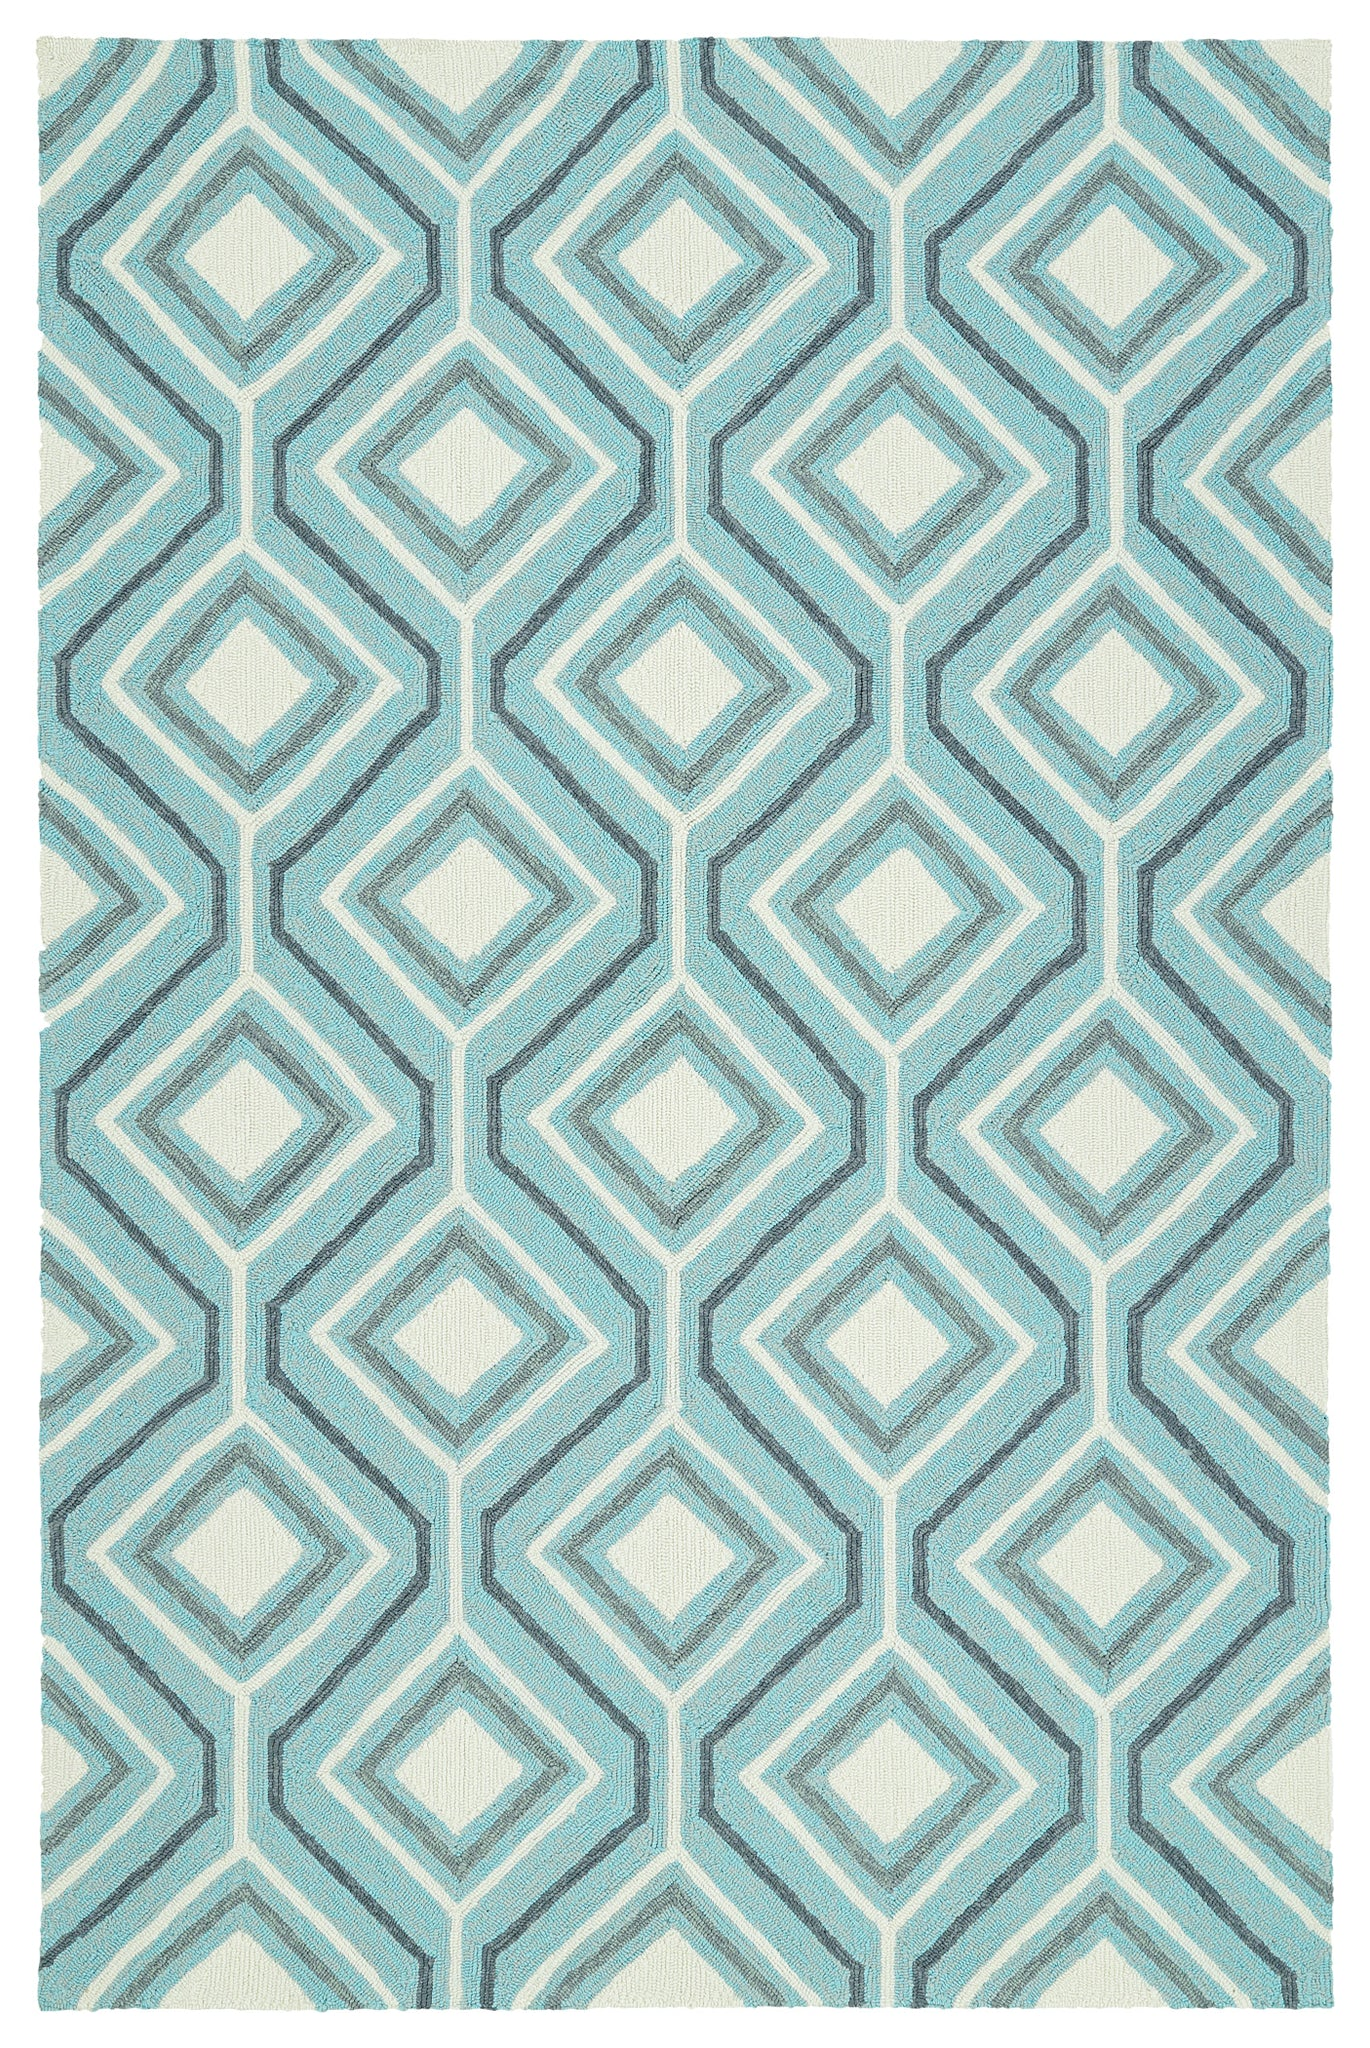 Kaleen Escape ESC04-17 Blue Area Rug main image